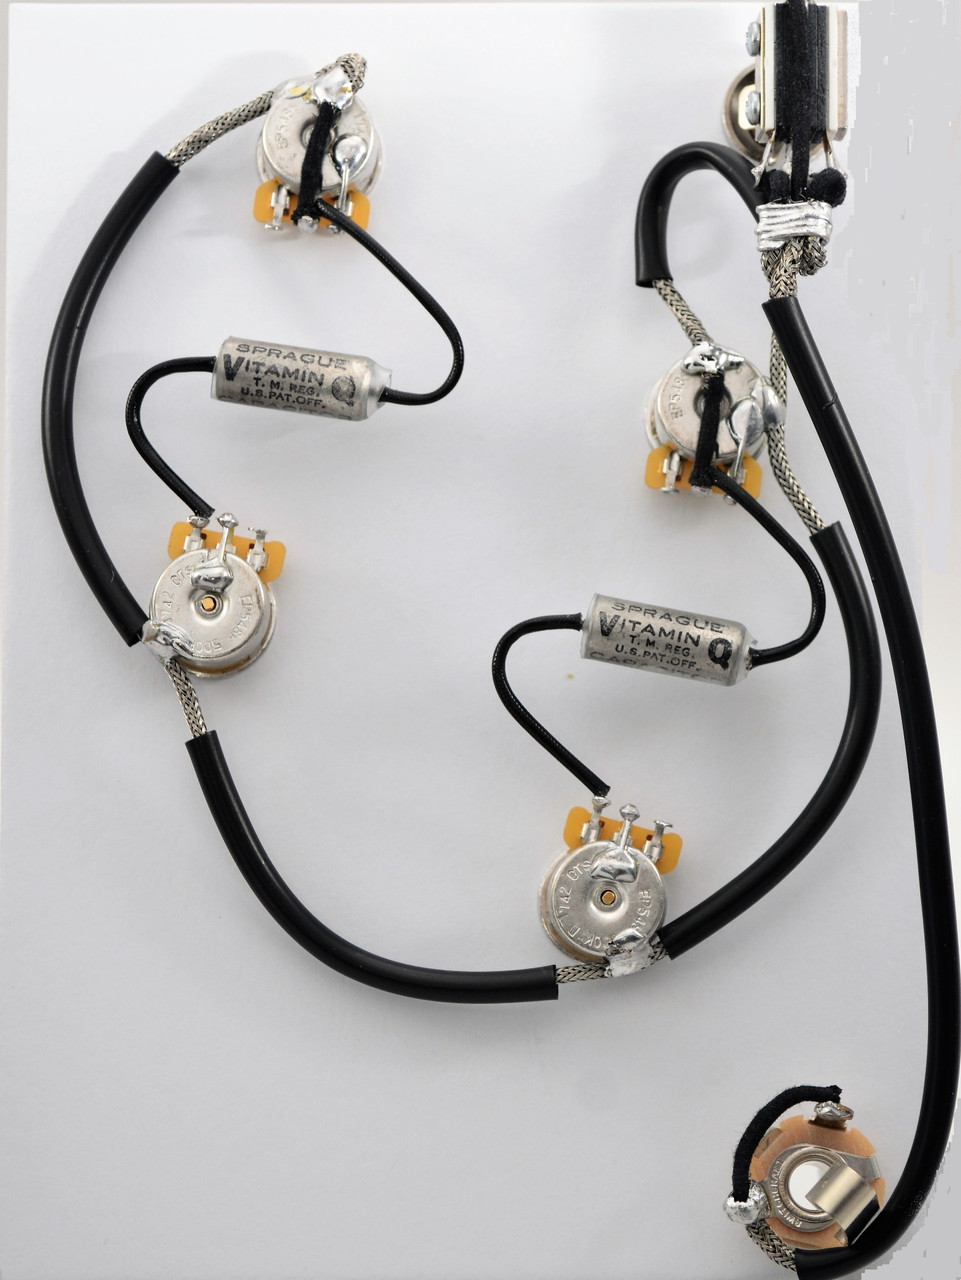 ES335 Wiring Harness for Epiphone for Dot or Sheraton 500k Vitamin Q .022uf  Capacitors